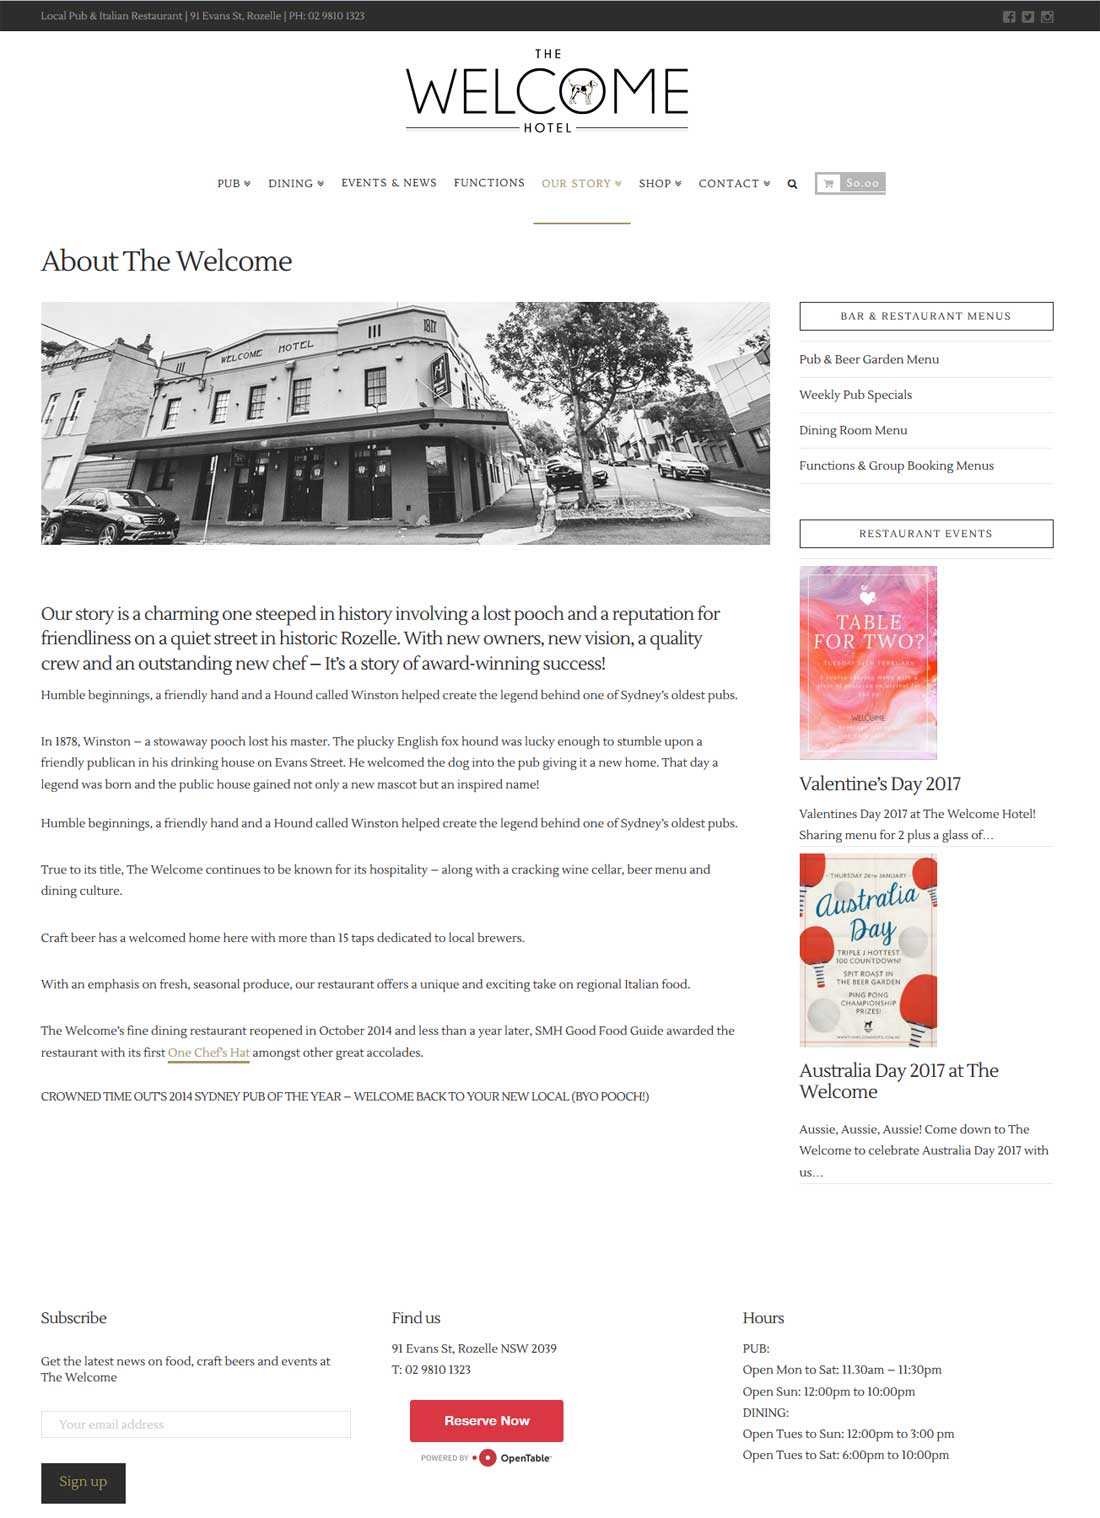 The Welcome Hotel - Rozelle